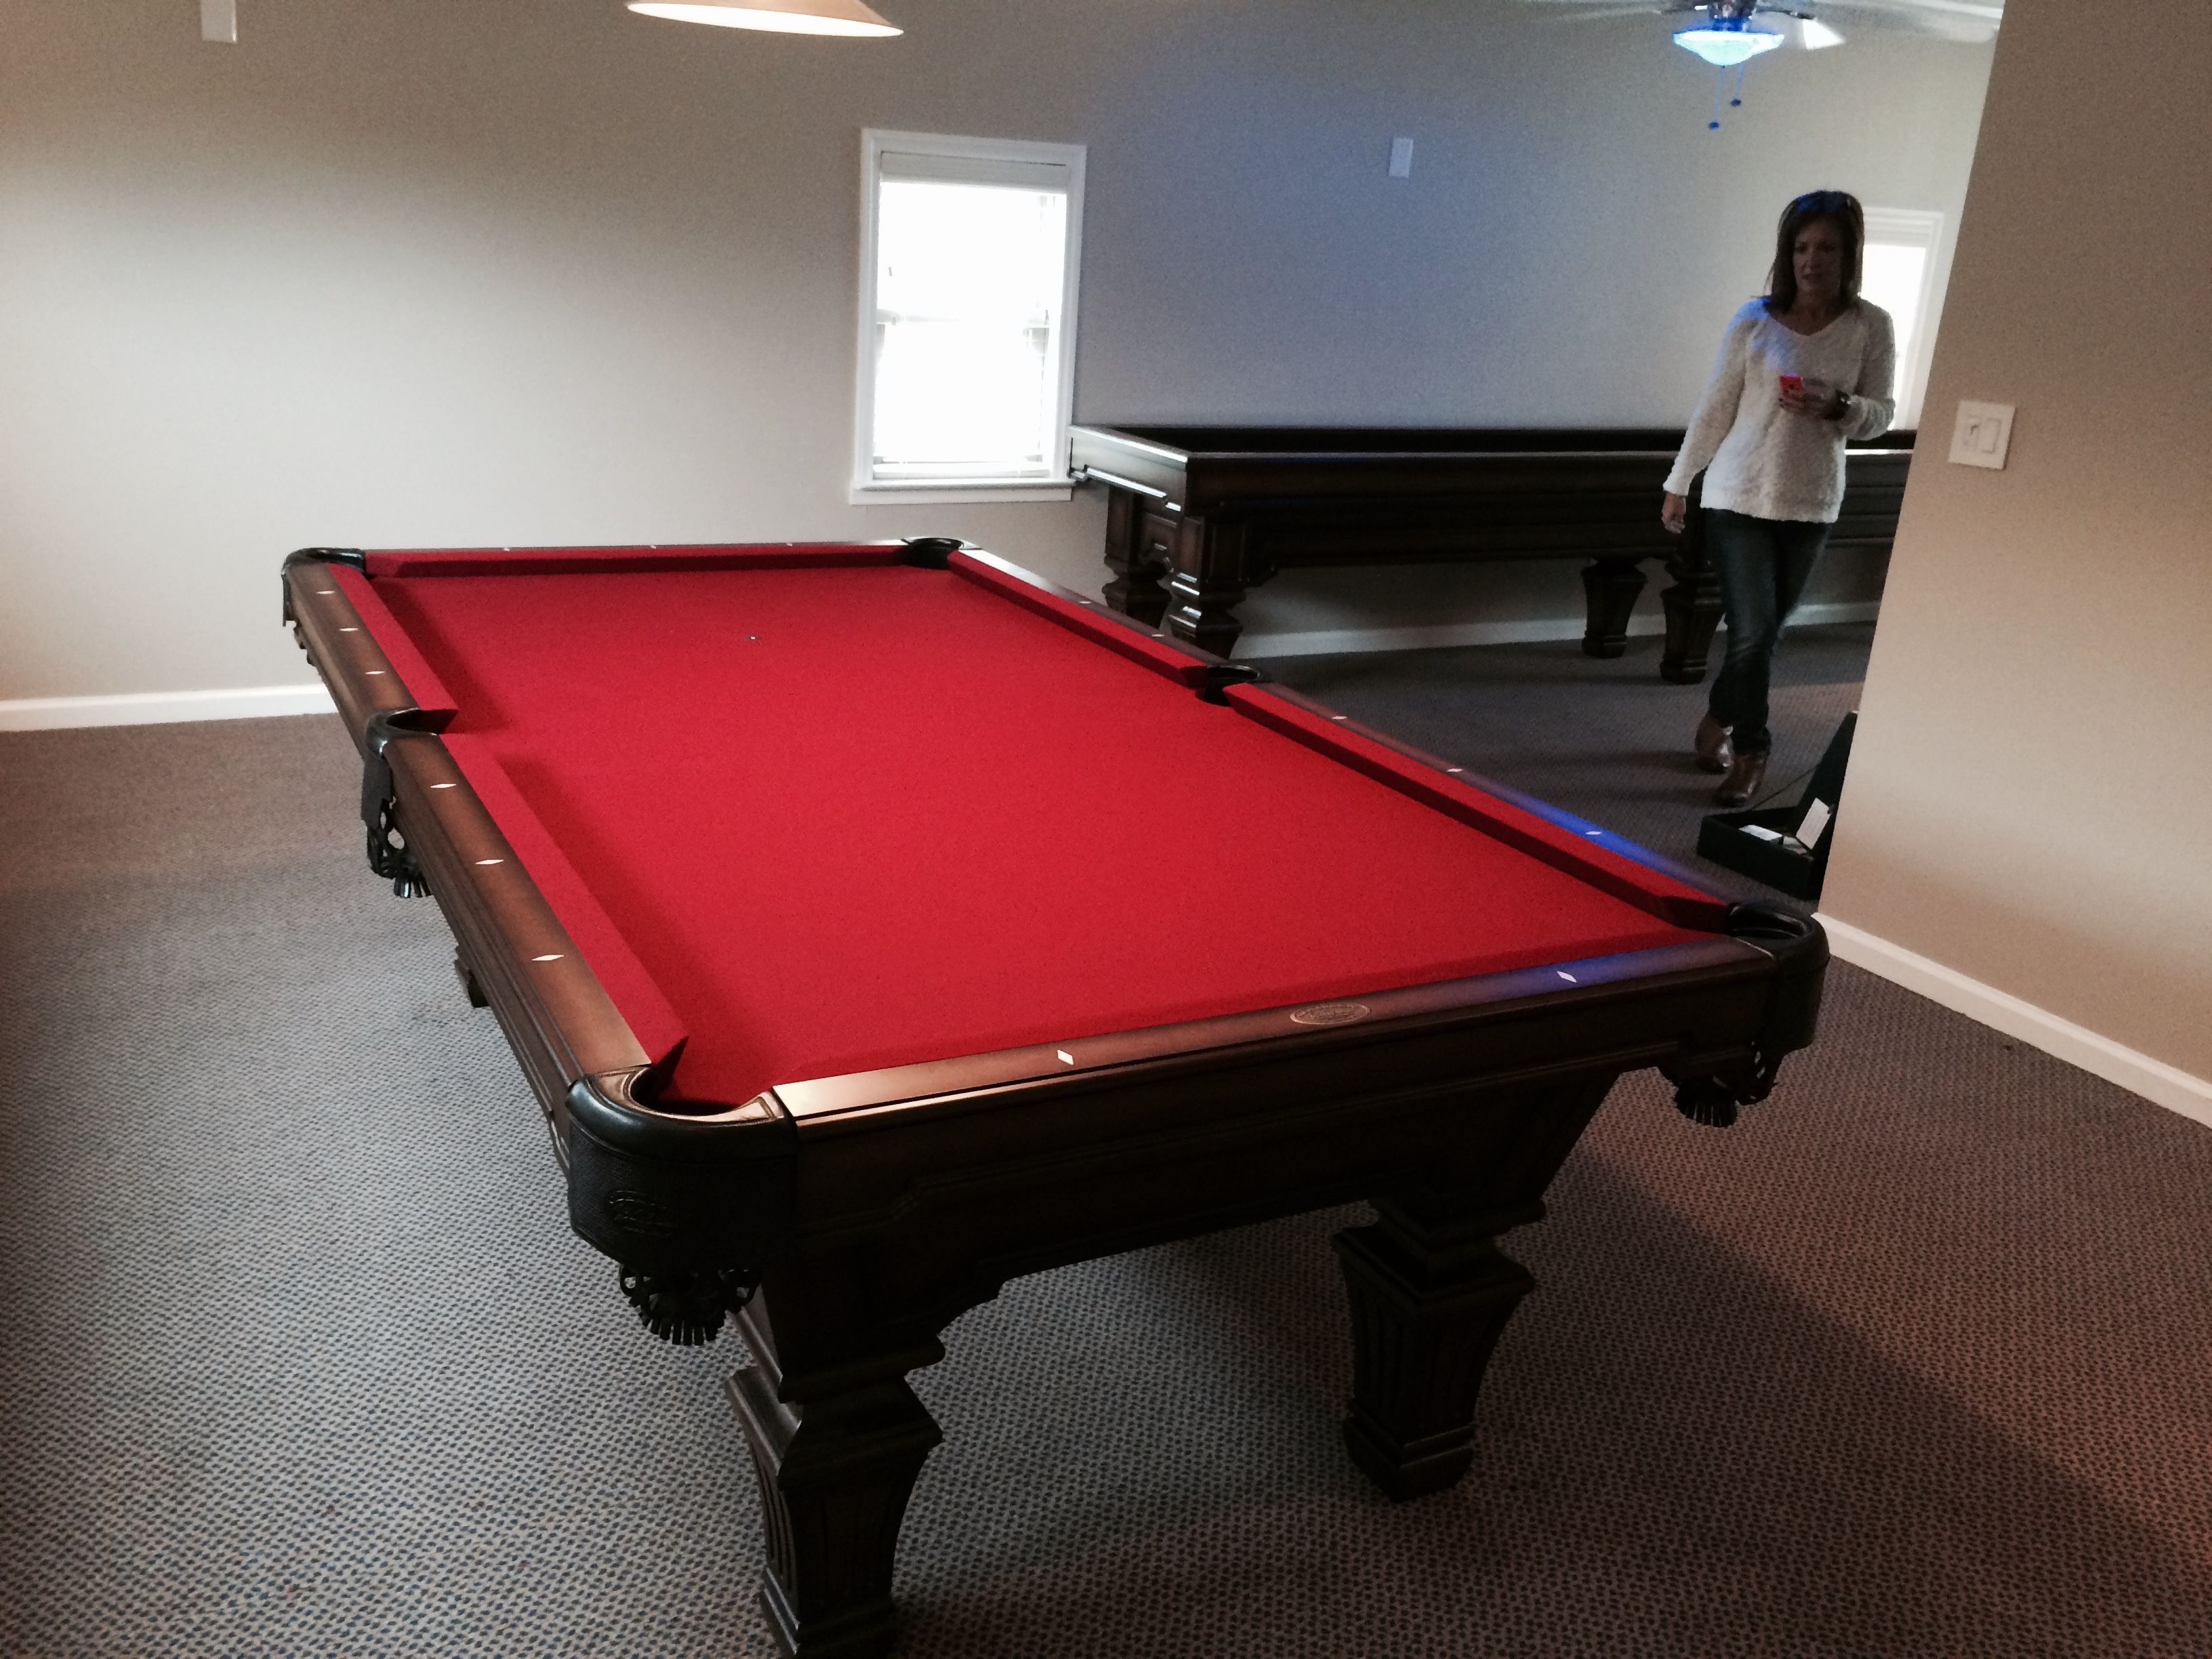 30th Anniversary Olhausen Pool Table Dream Home Pinterest And Room